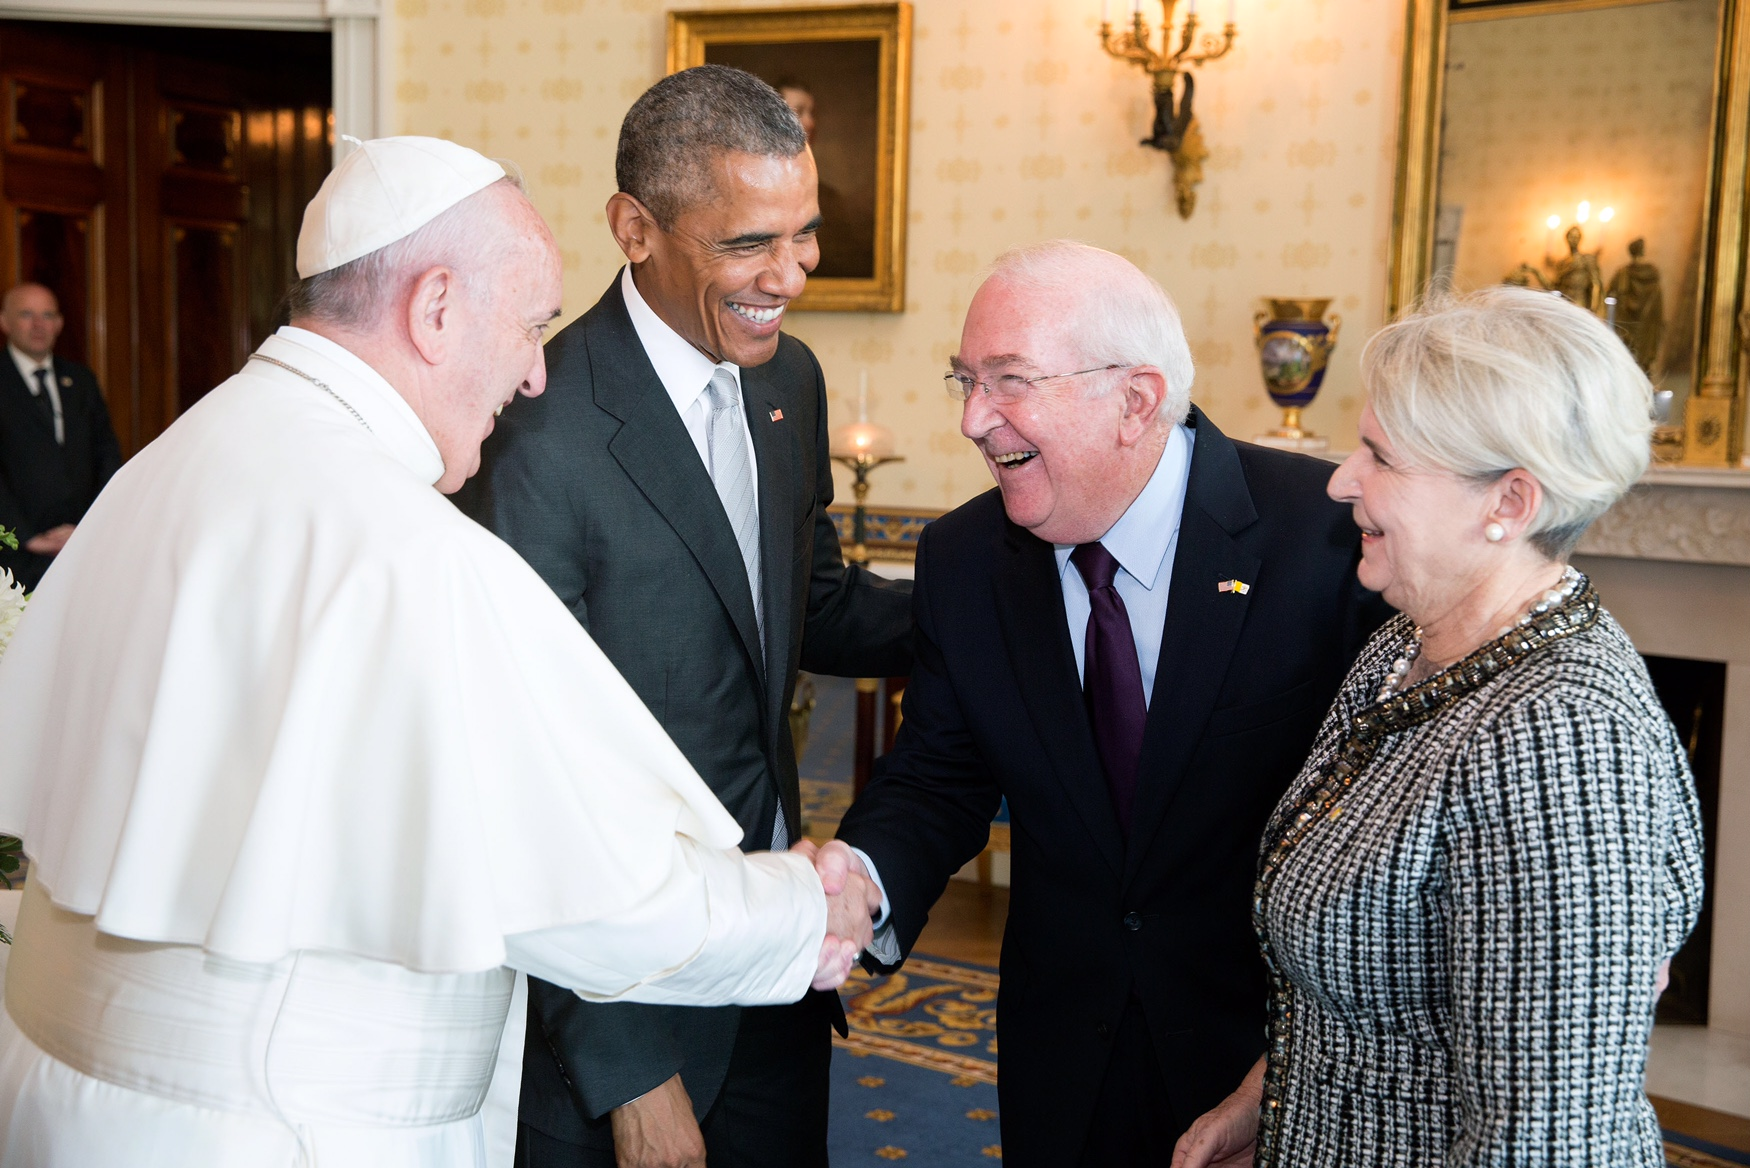 Ambassador Hacket, our keynote speaker, greets Pope Francis and President Obama